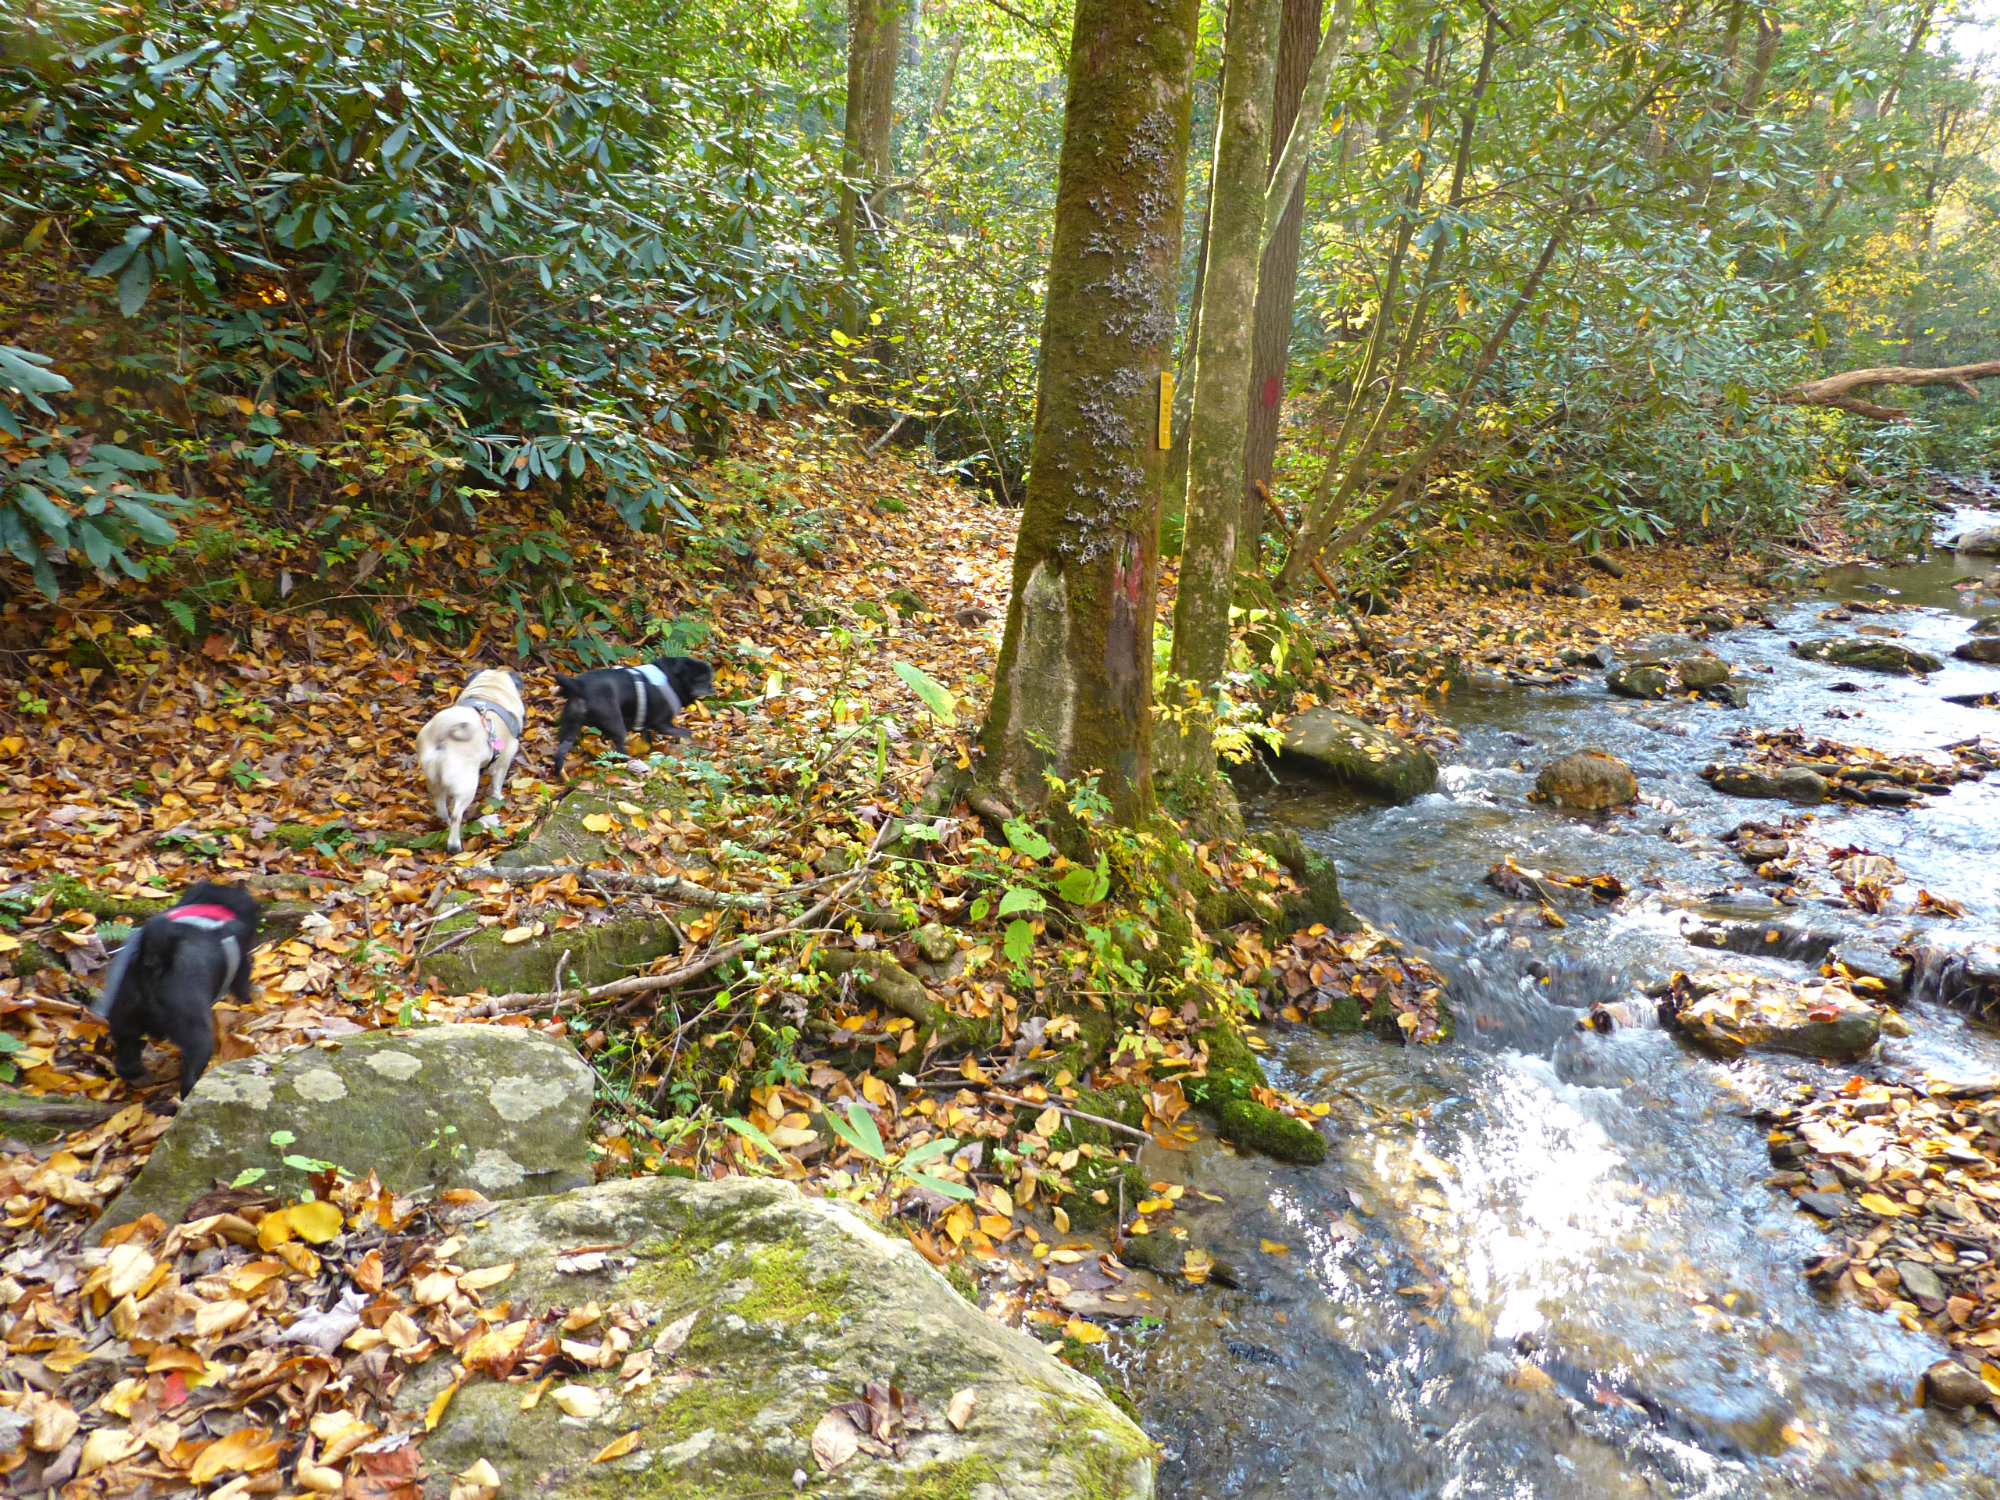 Three small dogs walking on a leaf-covered trail next to a forest stream